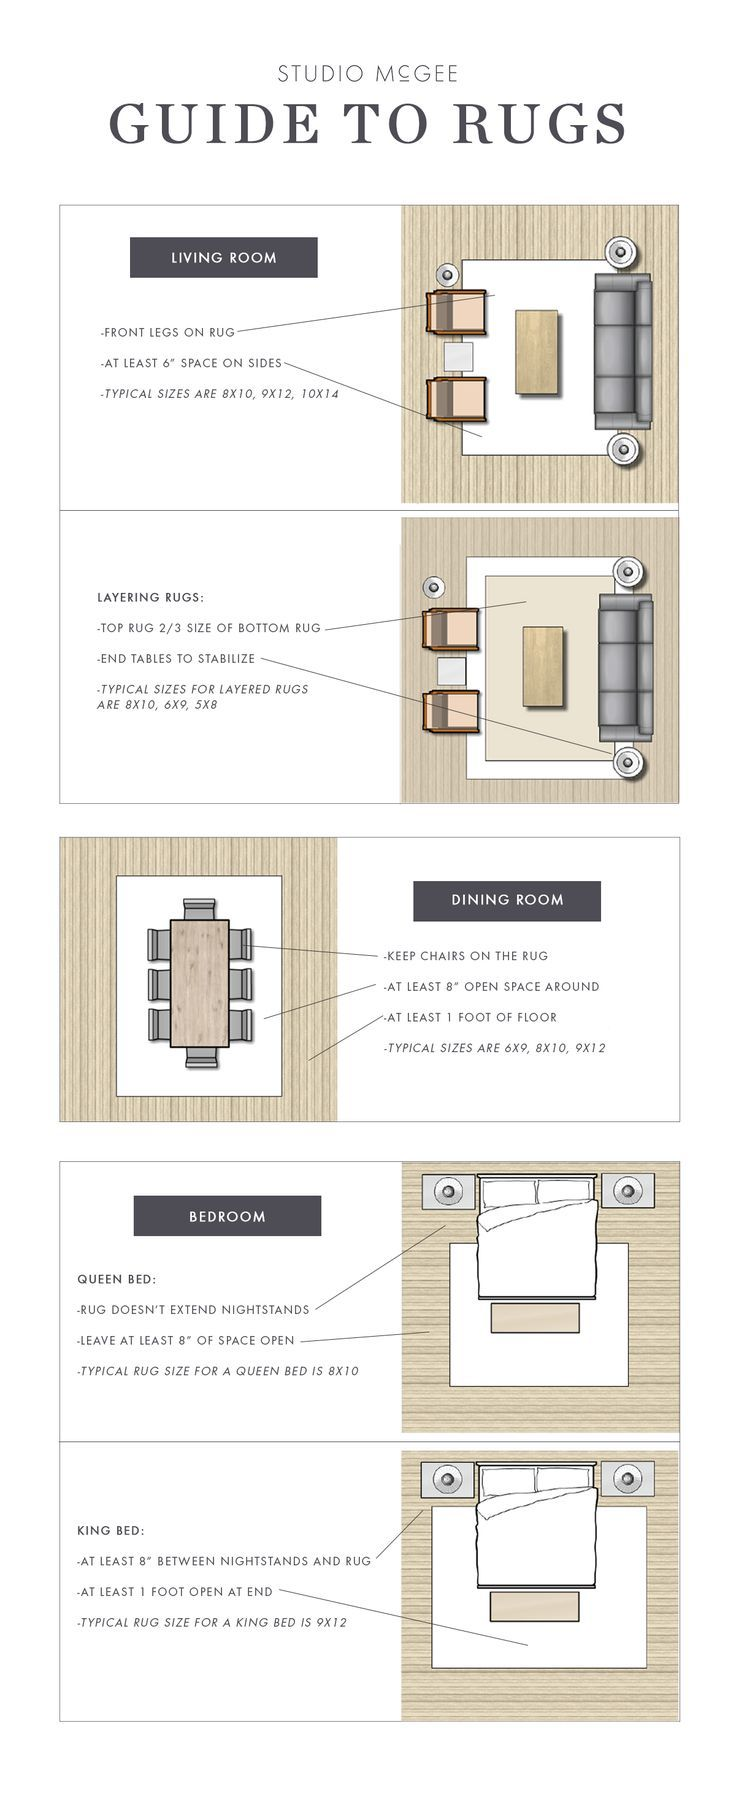 Guide to Rugs Rugs in living room, Interior design tips